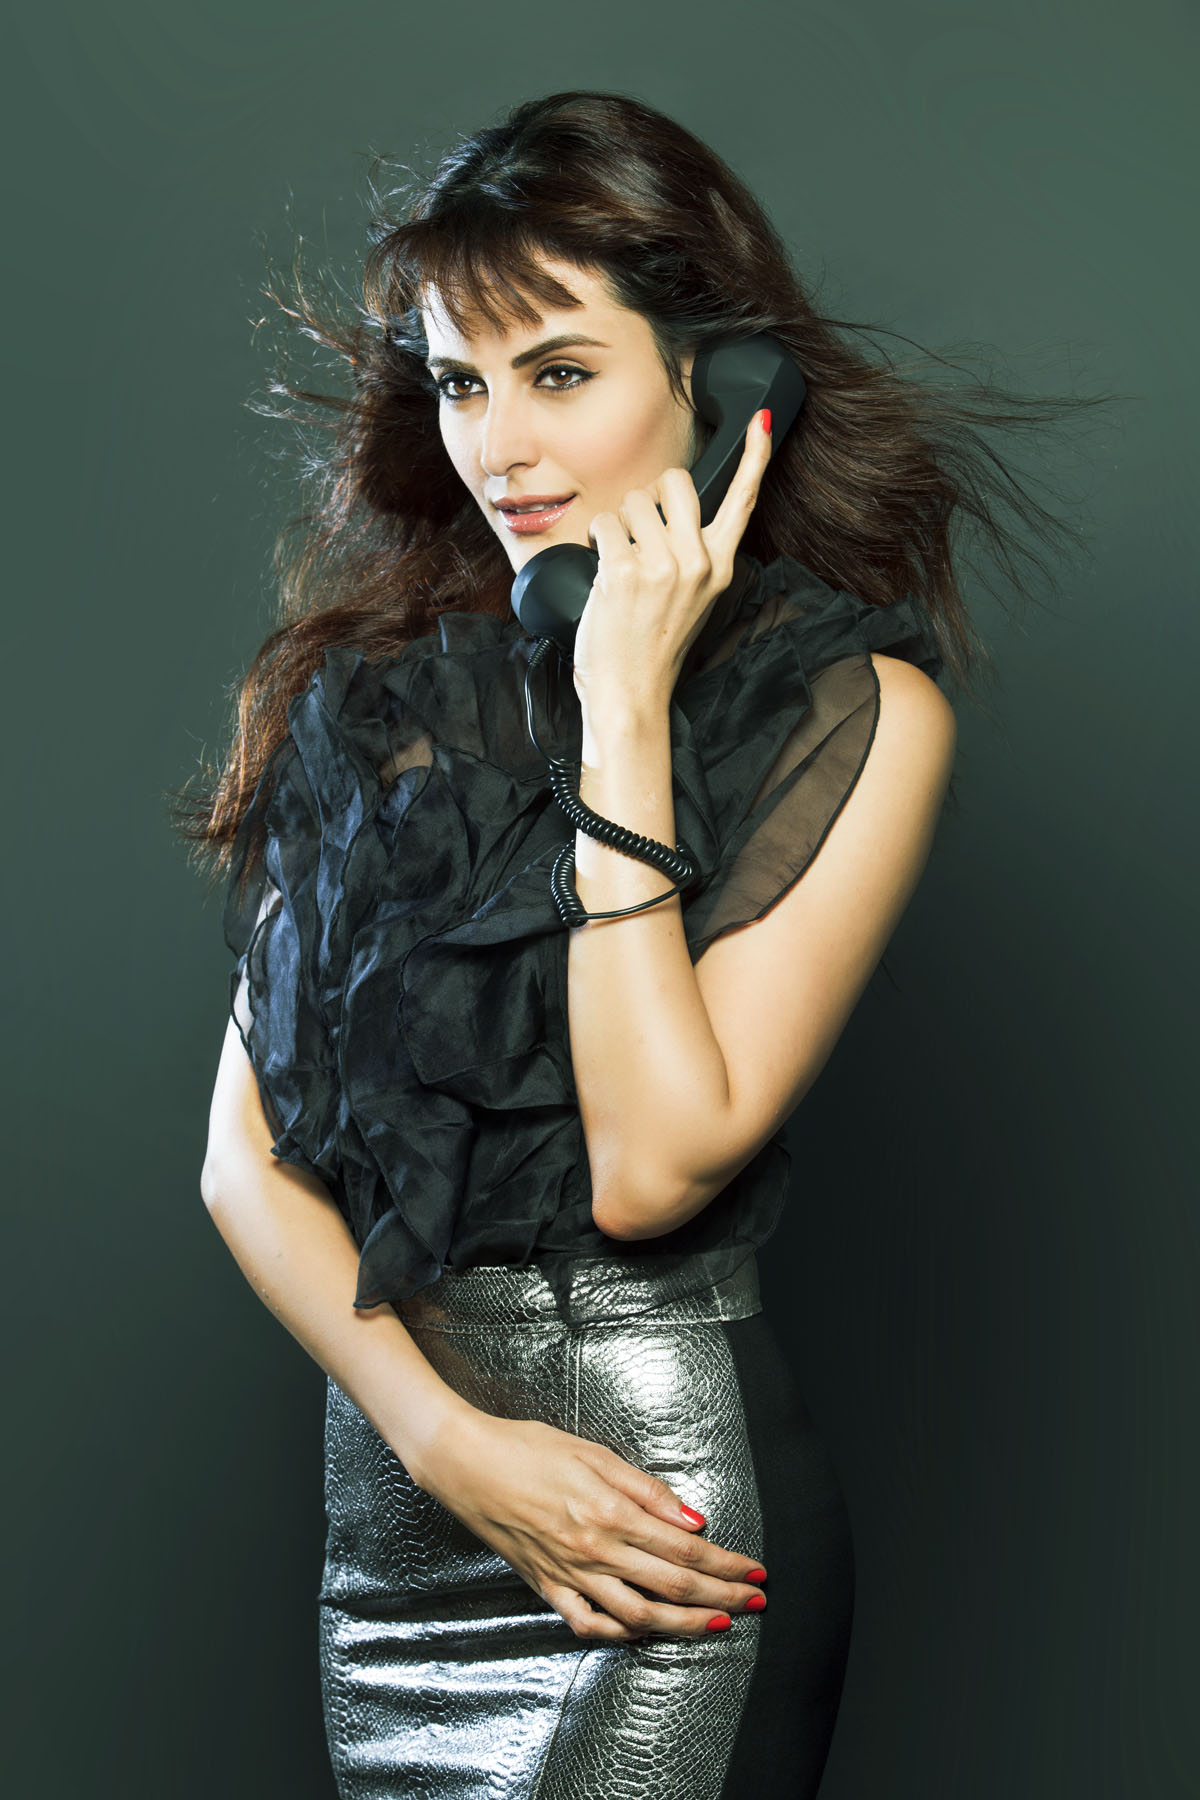 Mandana Karimi - Pic 13 (Image Courtesy - Dale Bhagwagar Media Group)